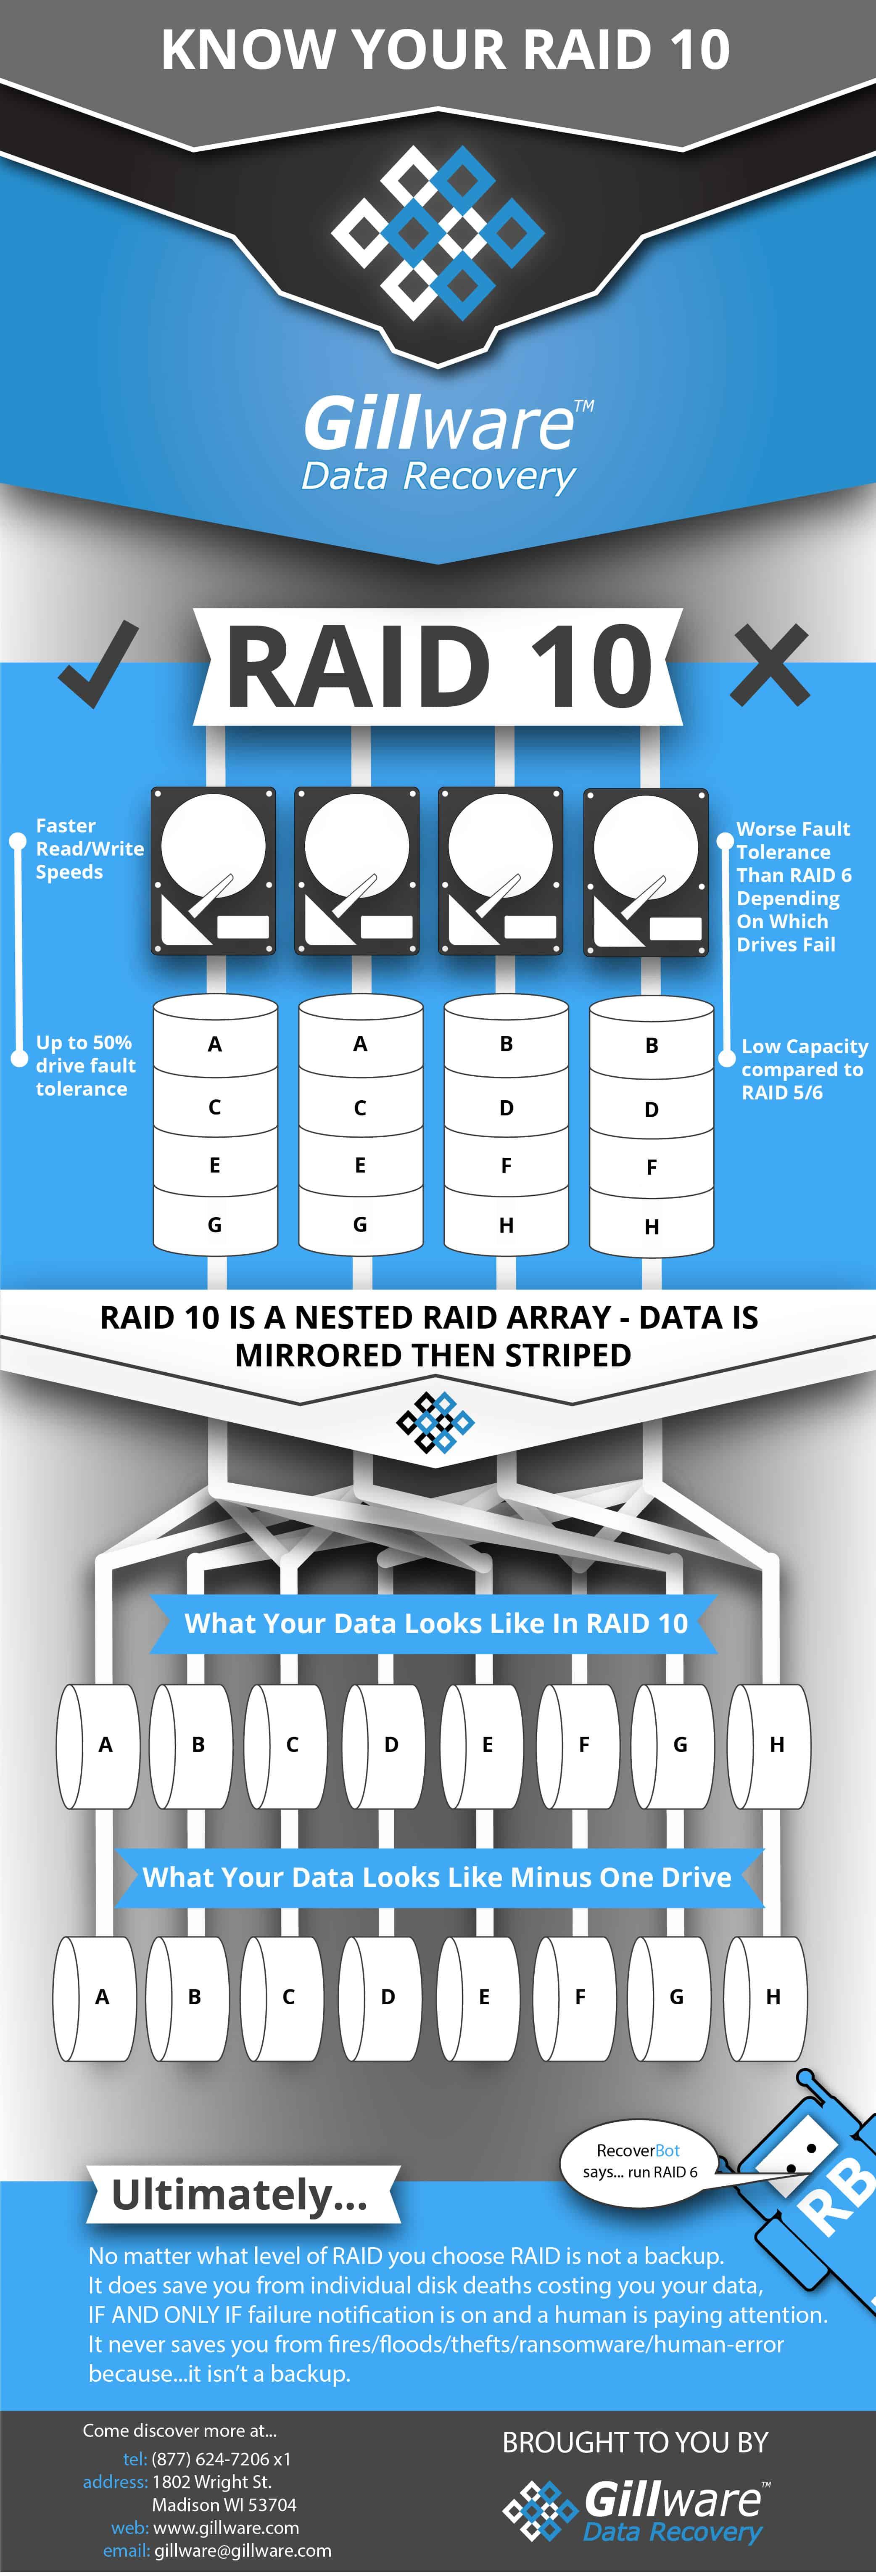 RAID 10 Data Recovery: How Our Engineers Recover RAID 10